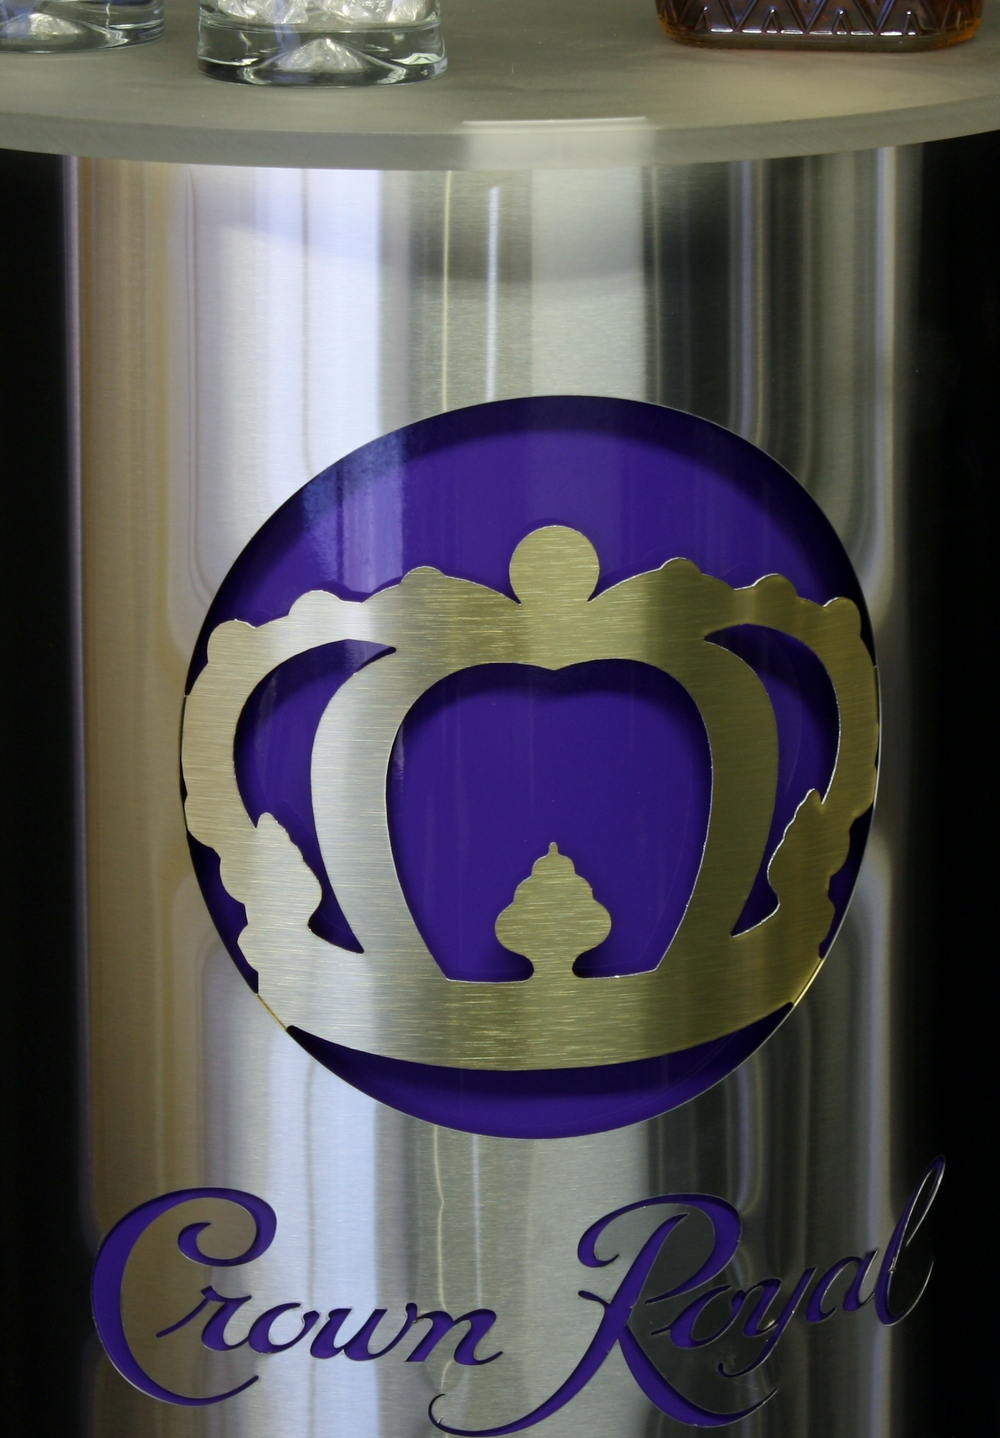 Crown Royal Gold Series 114.JPG